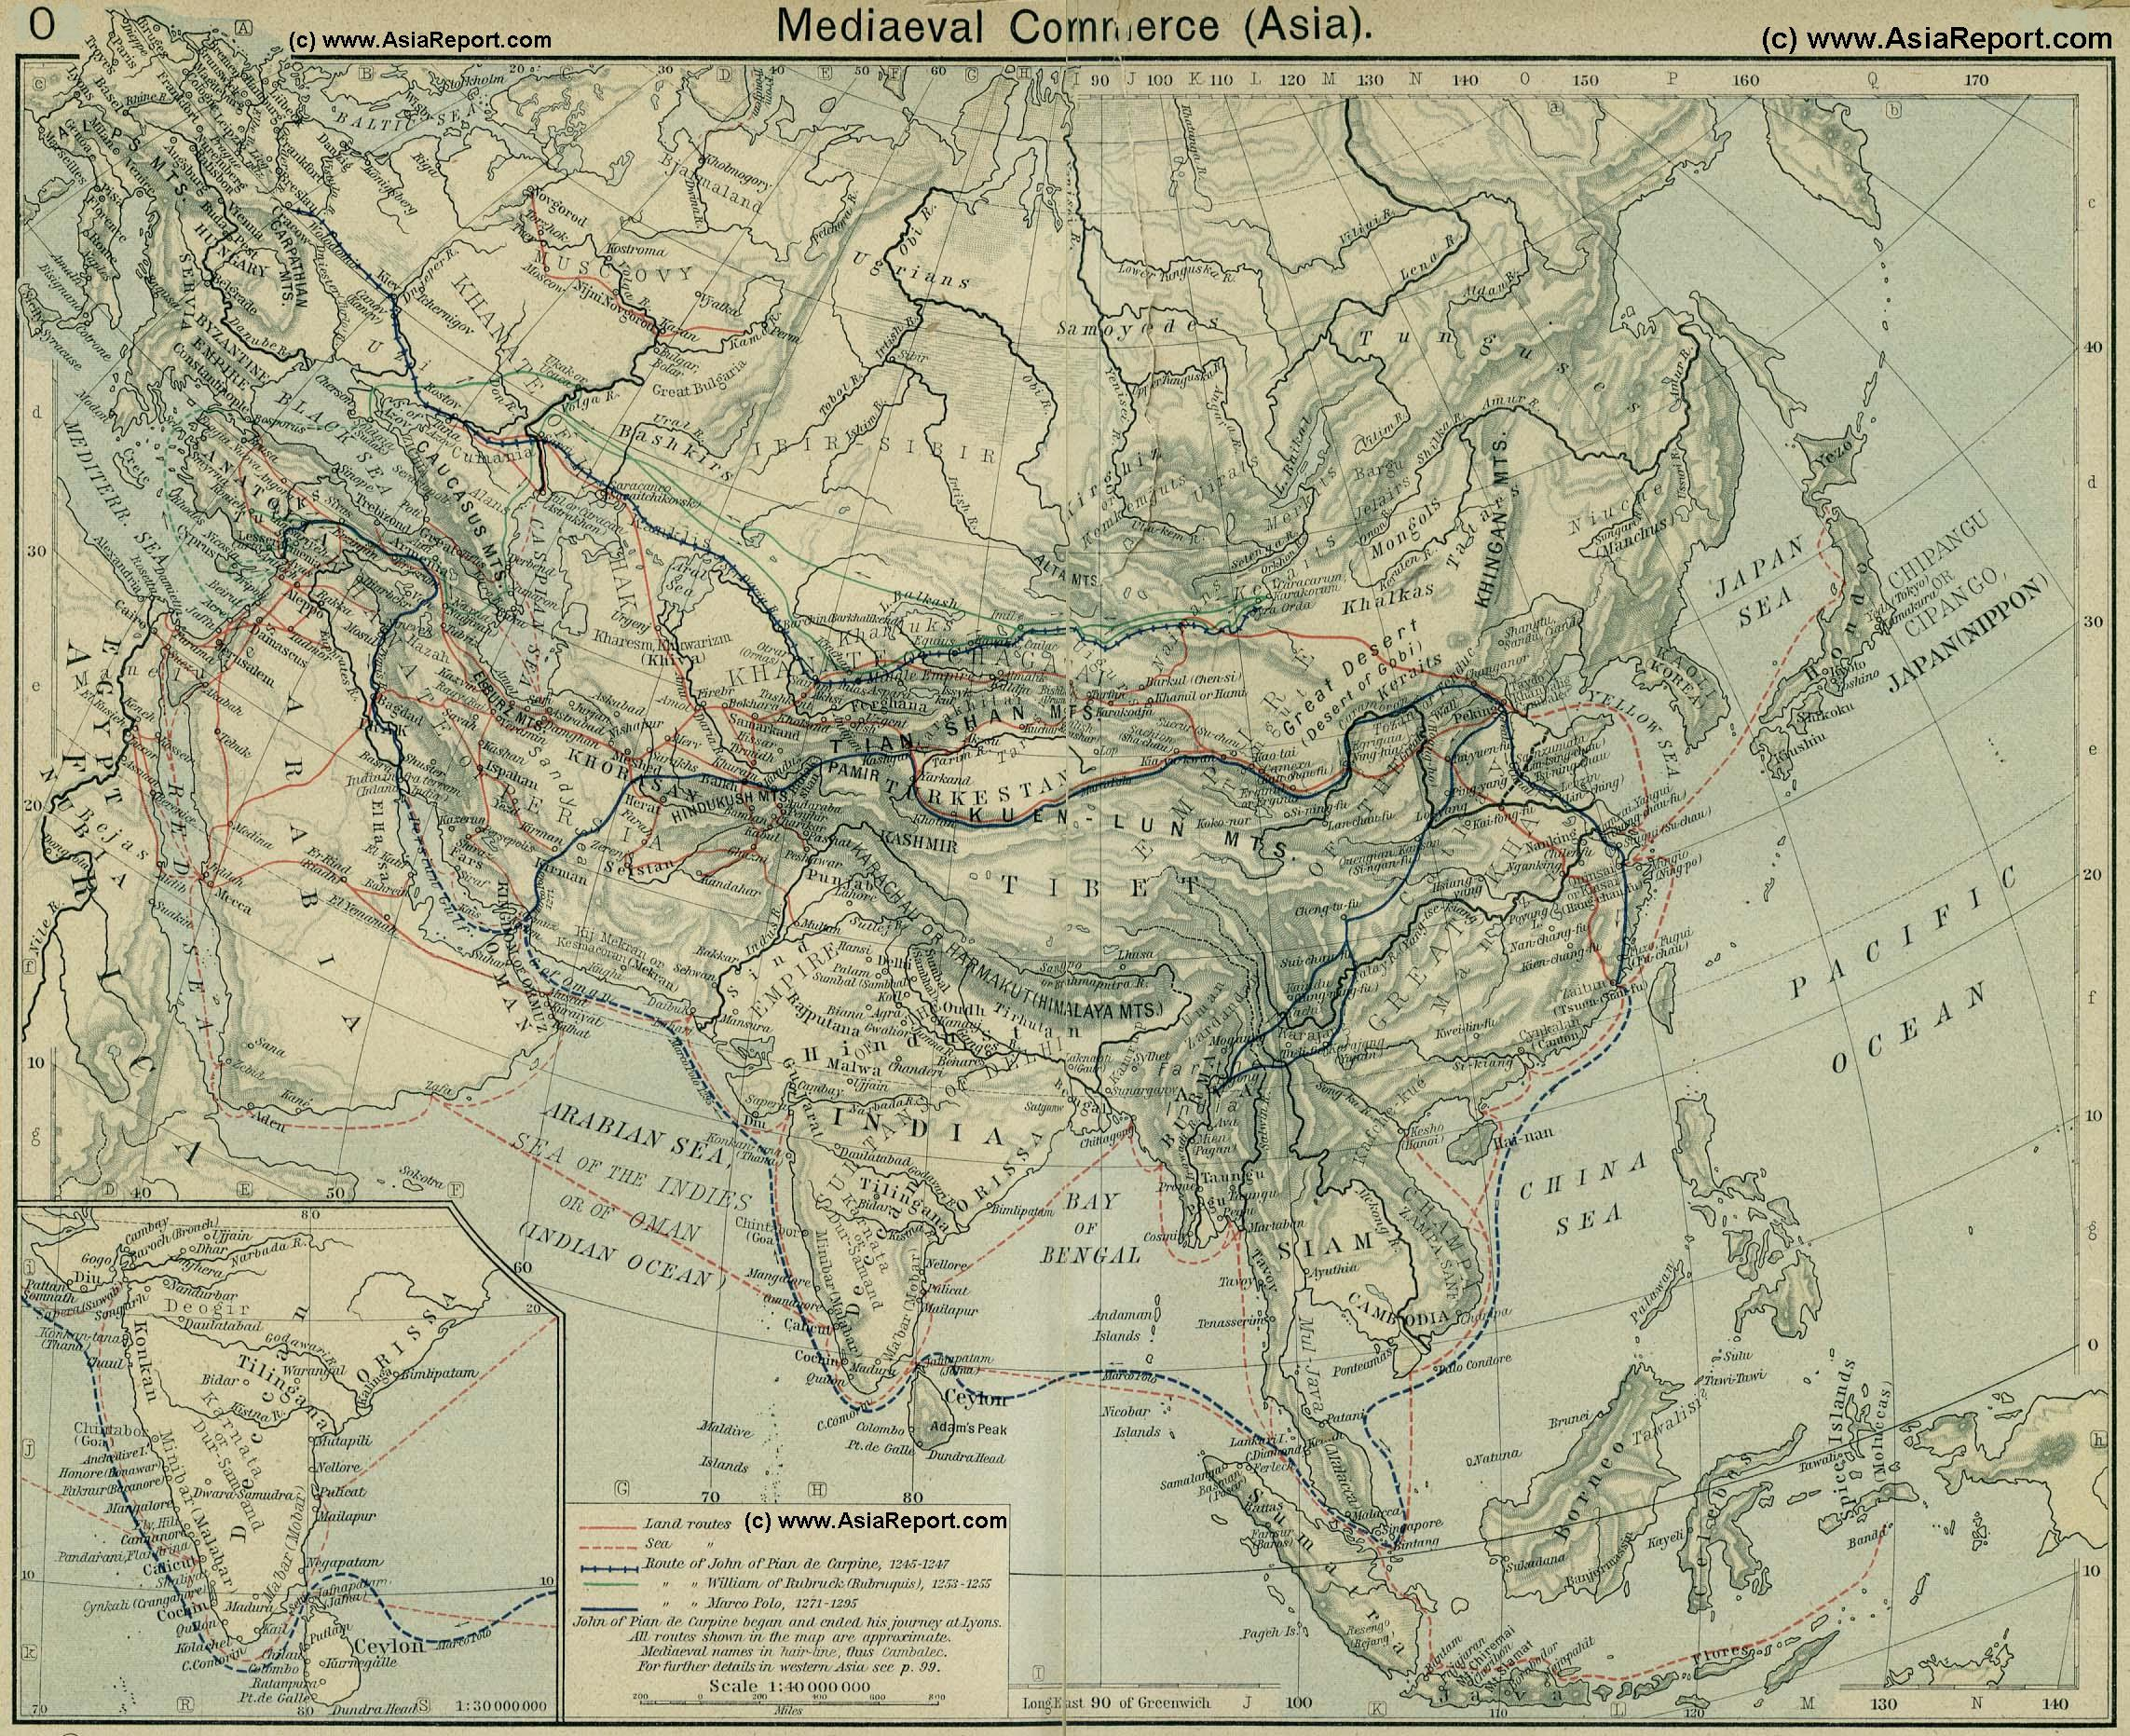 Map Eurasian Trade Routes In The 13th Century